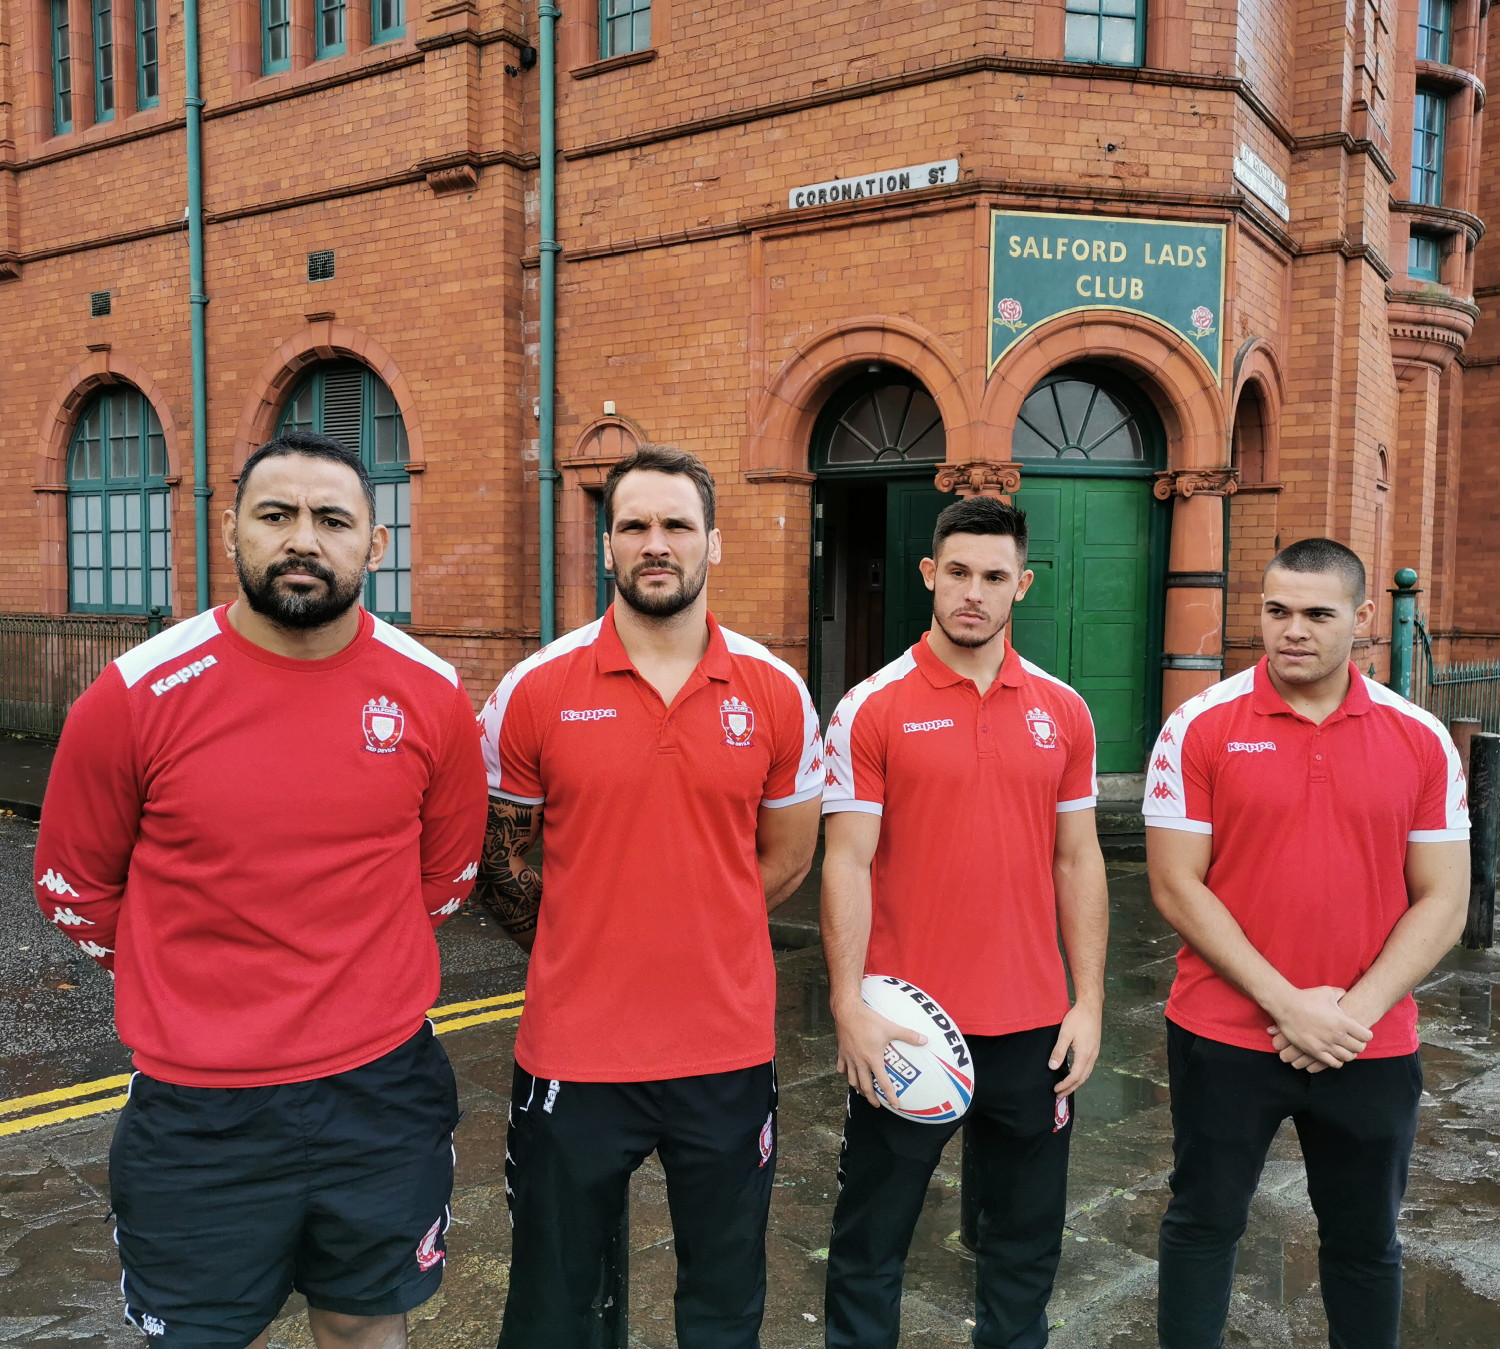 Salford Reds filmed at the club